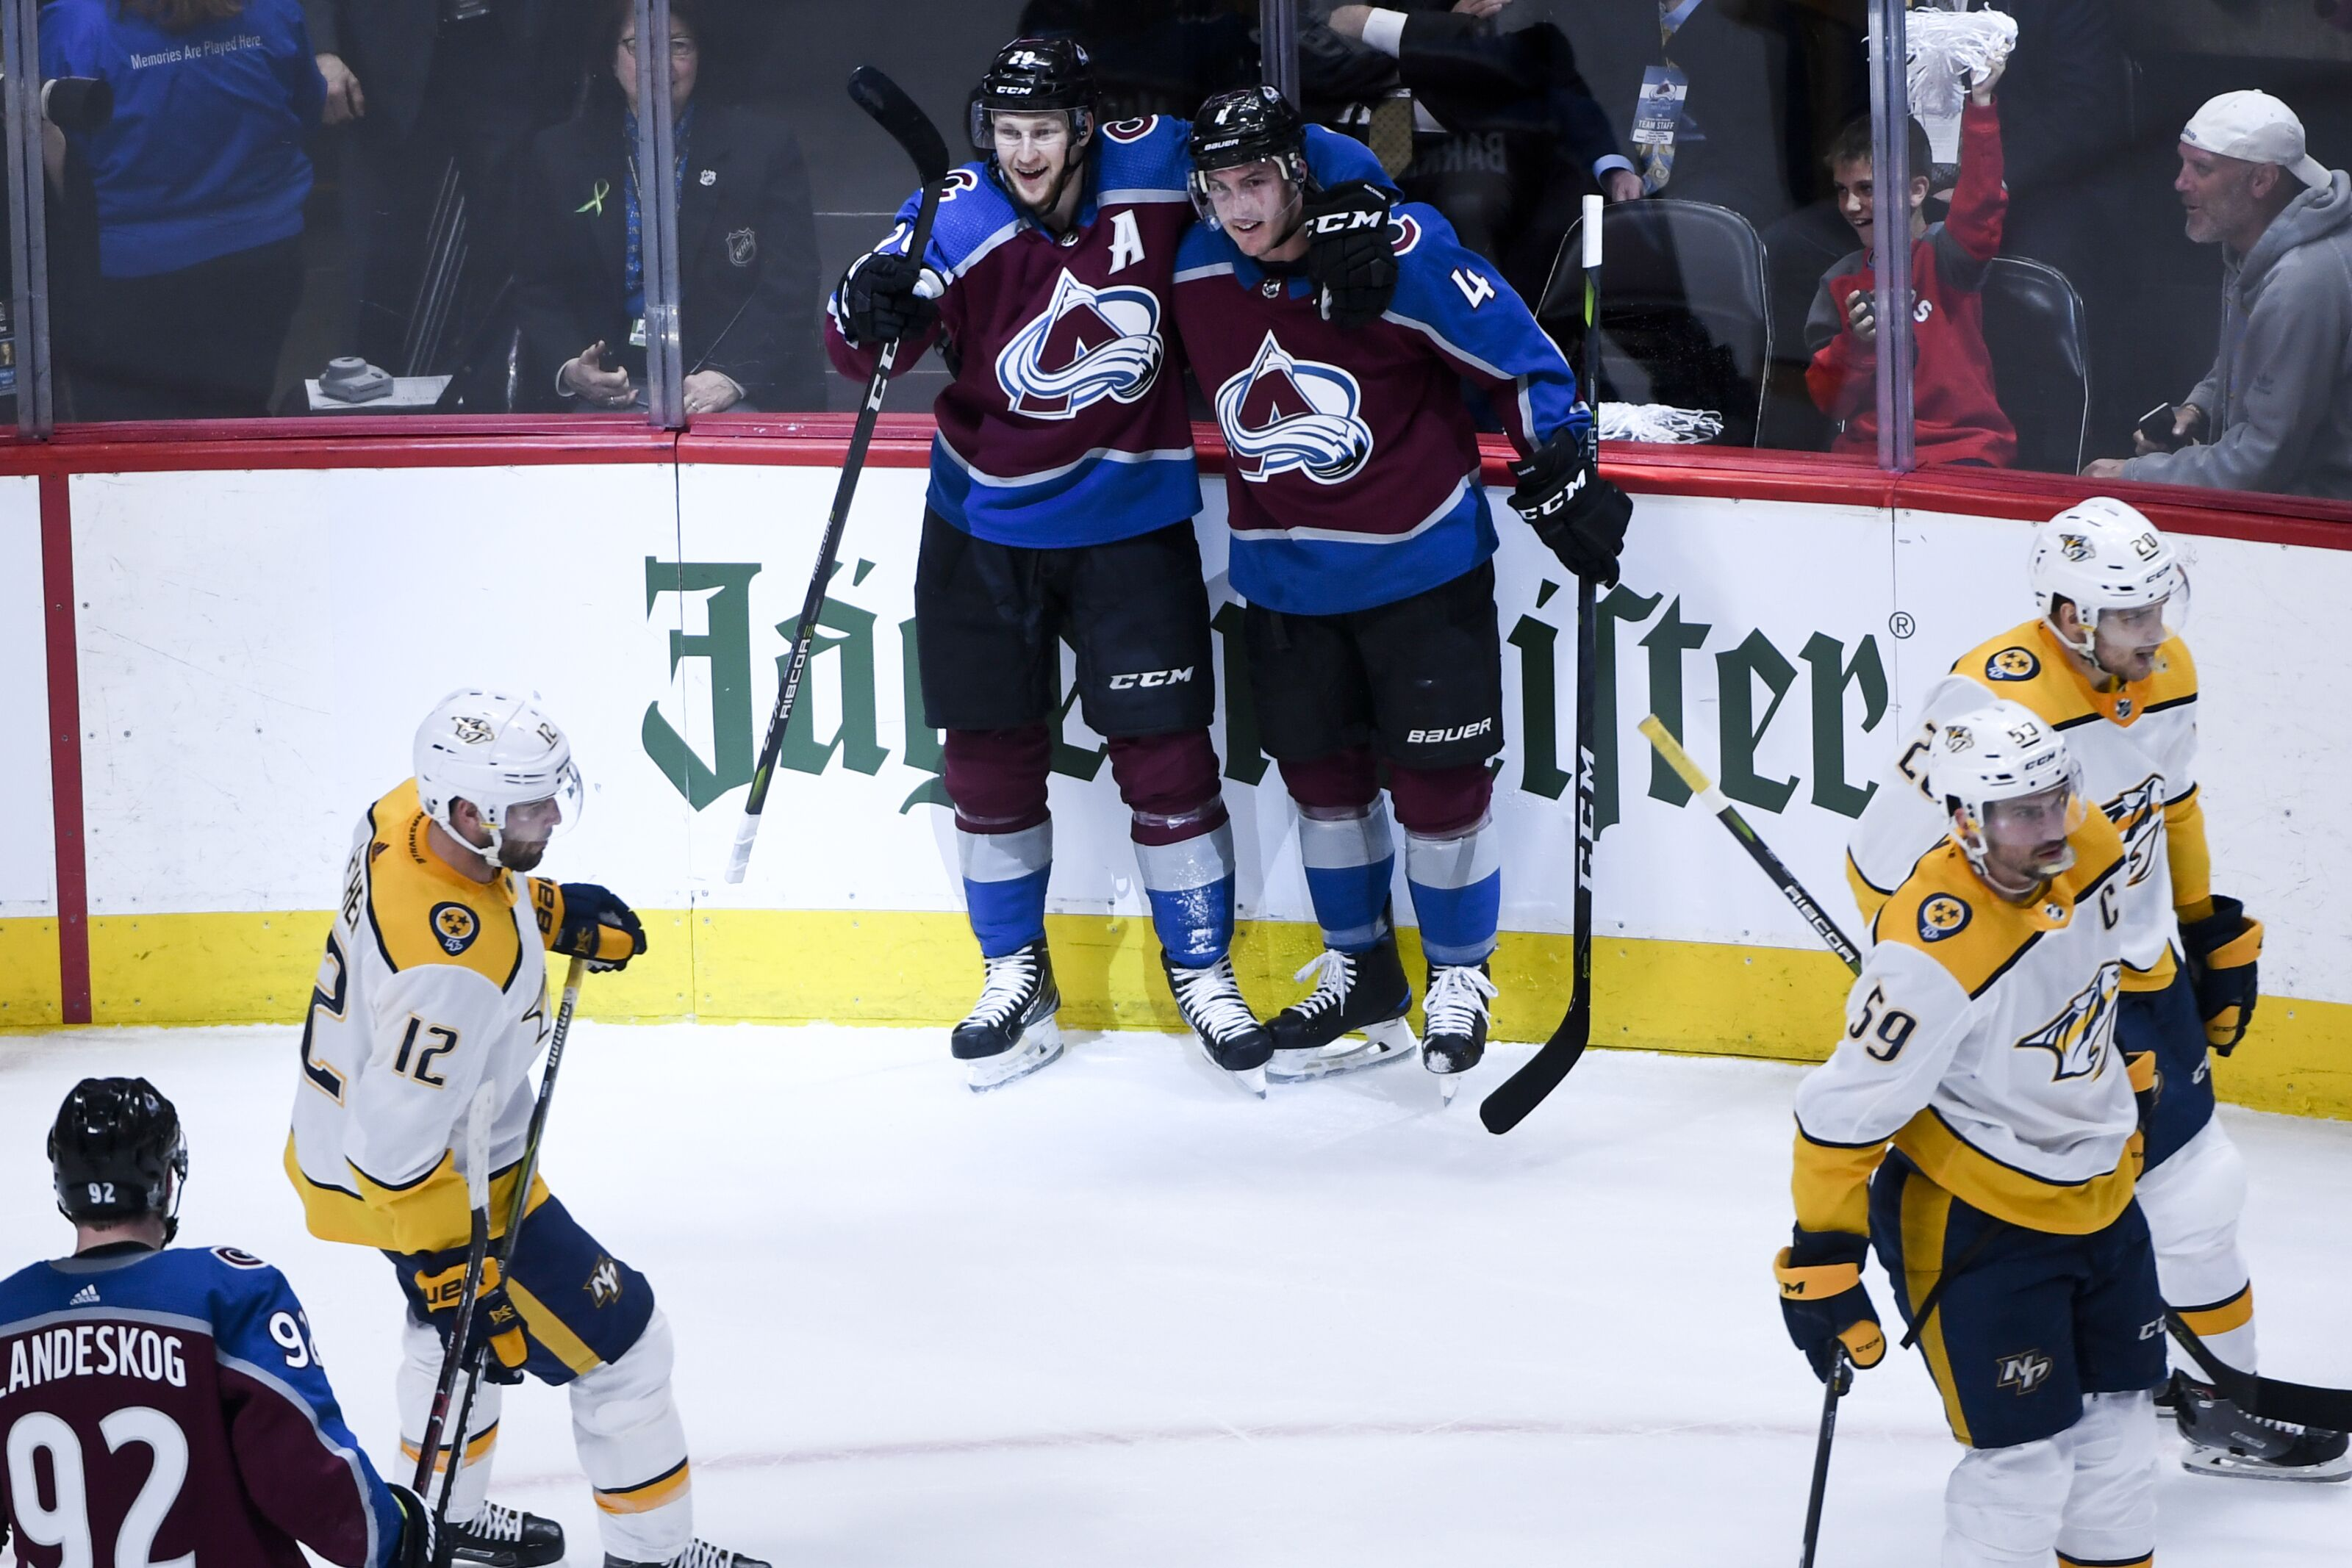 Colorado Avalanche: Tweets about Freindship